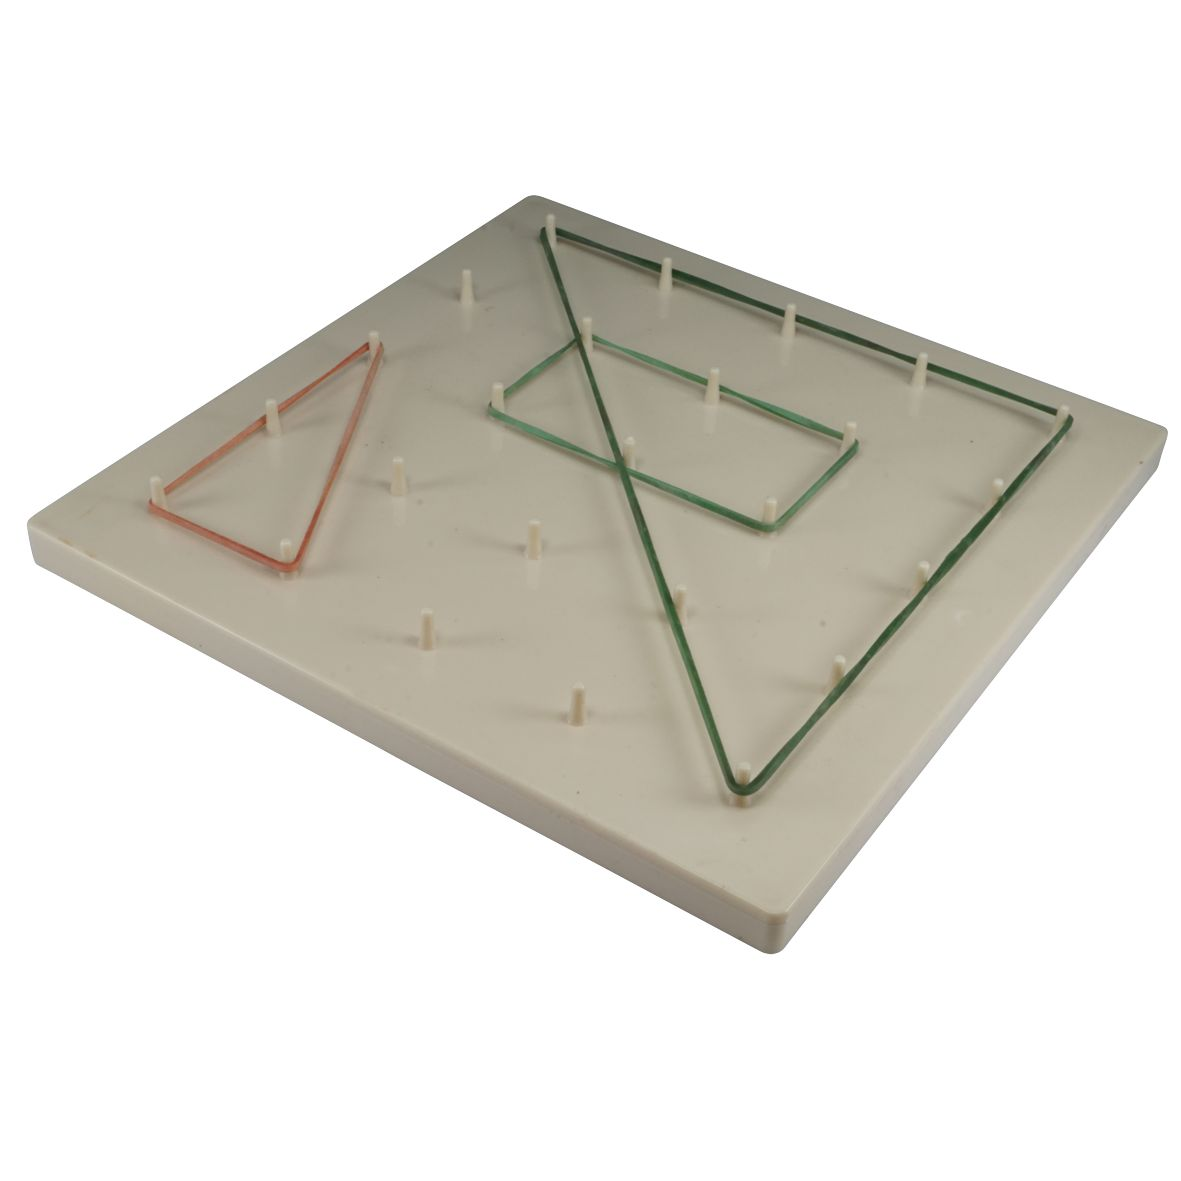 GEOBOARD STUDENT PLASTIC C/W RUBBER BANDS